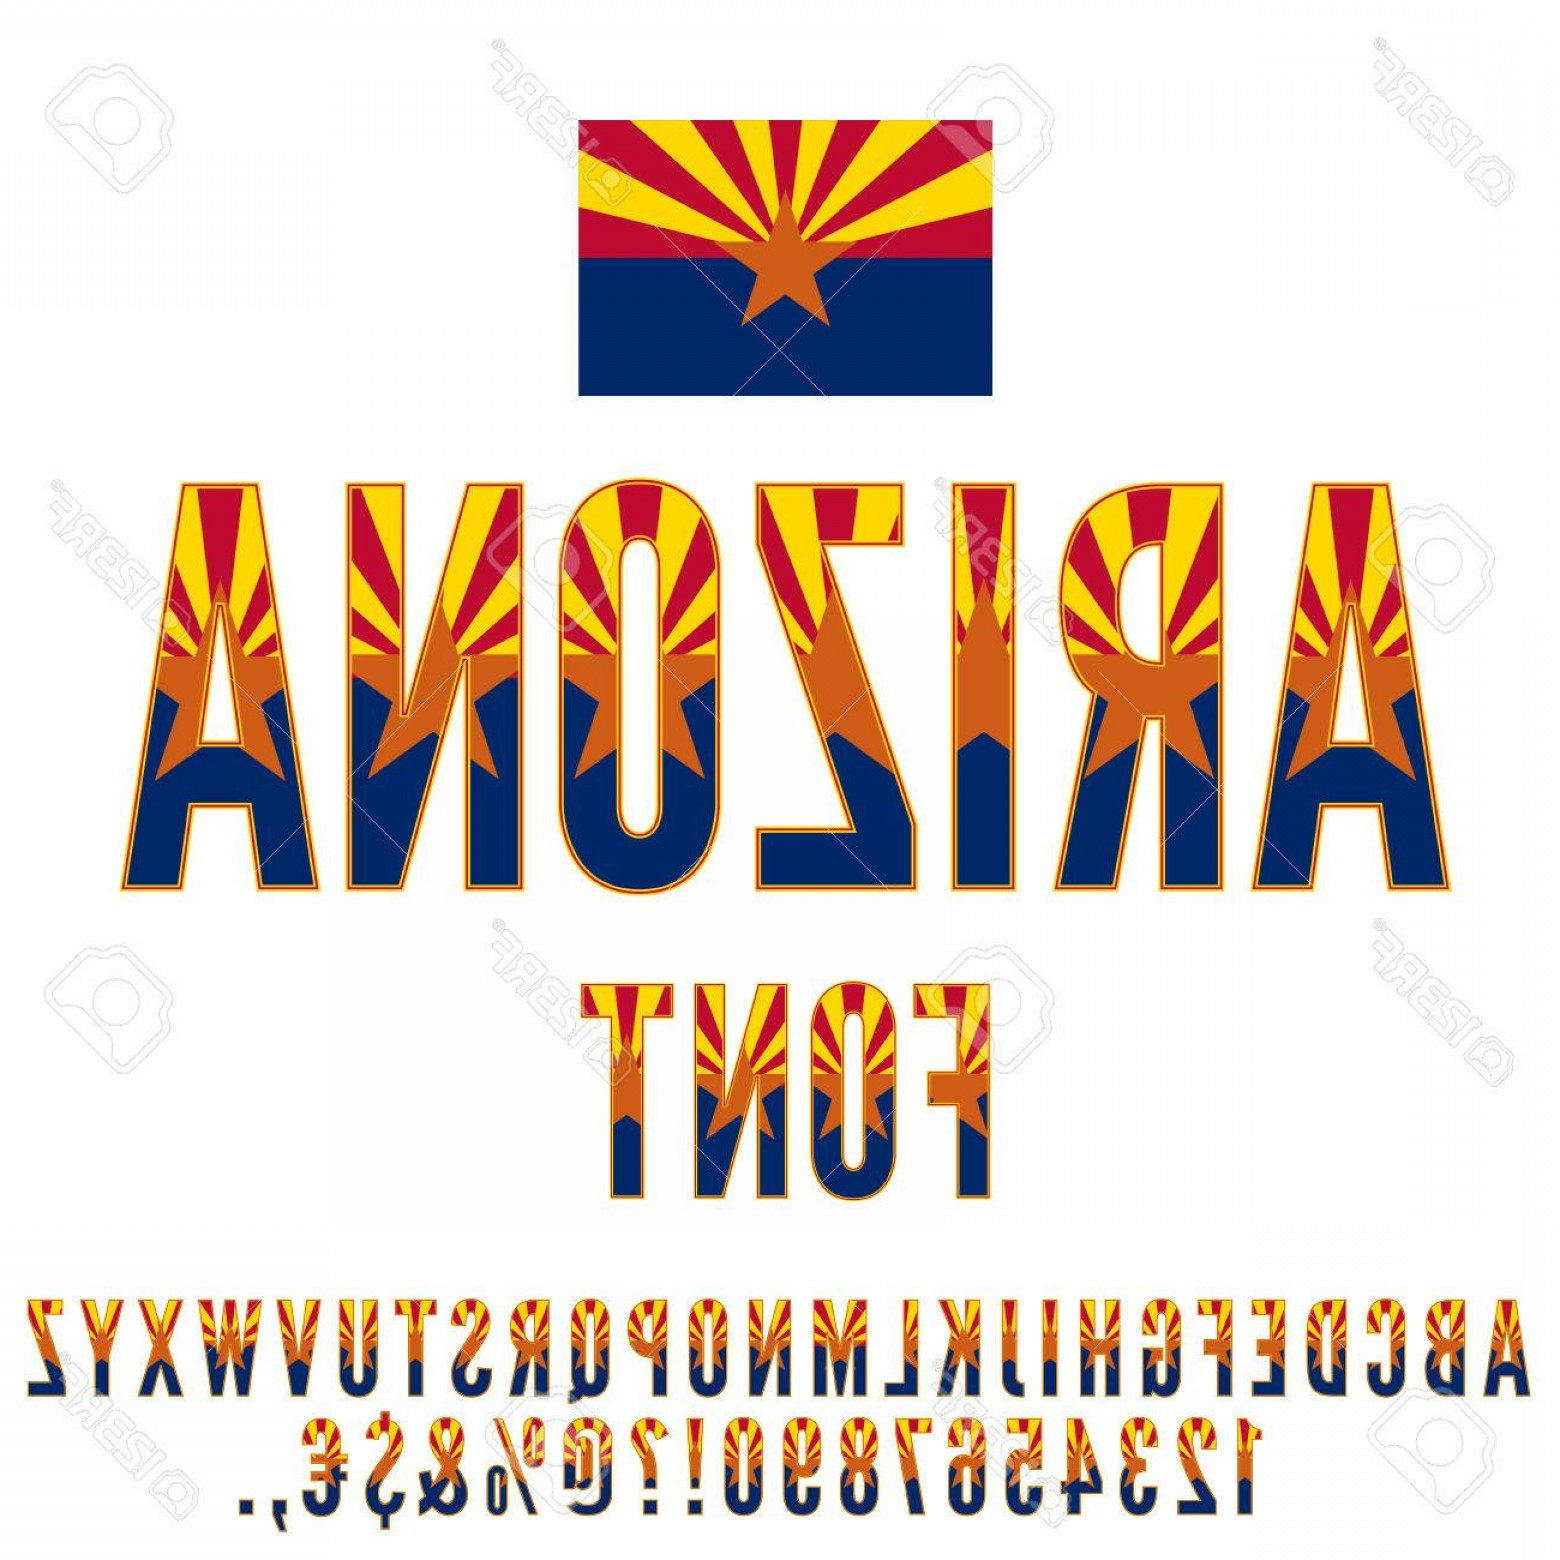 Arizona Flag Vector: Photostock Vector Arizona Usa State Flag Font Alphabet Numbers And Symbols Stylized By State Flag Vector Typeset